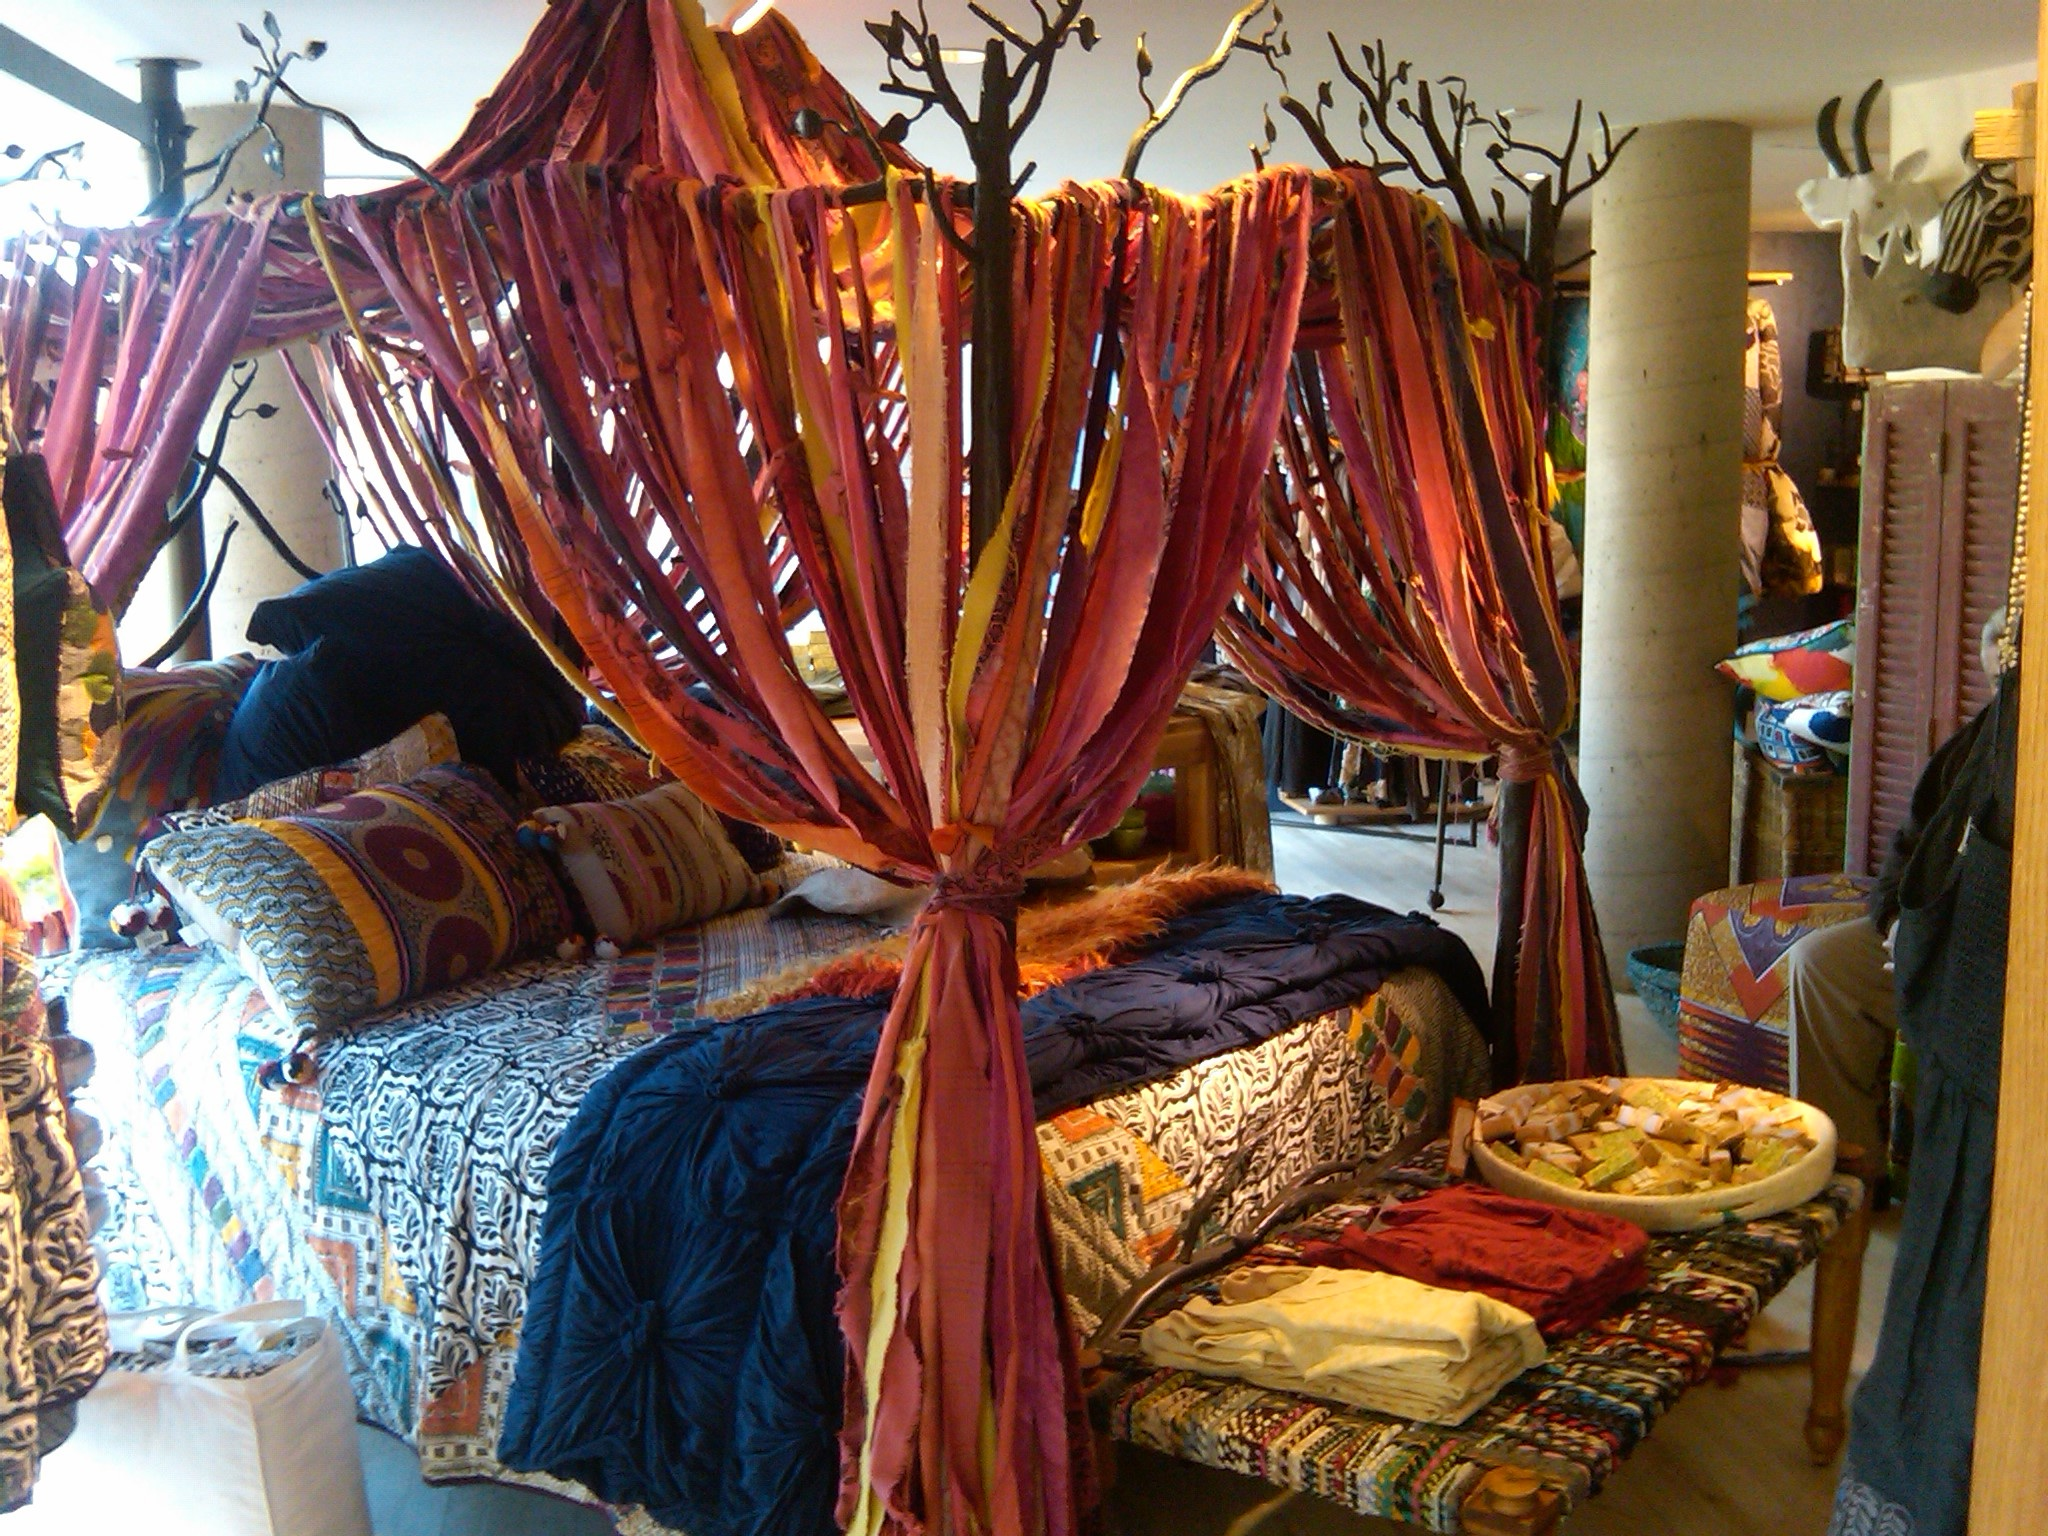 Bohemian library on pinterest bohemian gypsy and Anthropologie home decor ideas